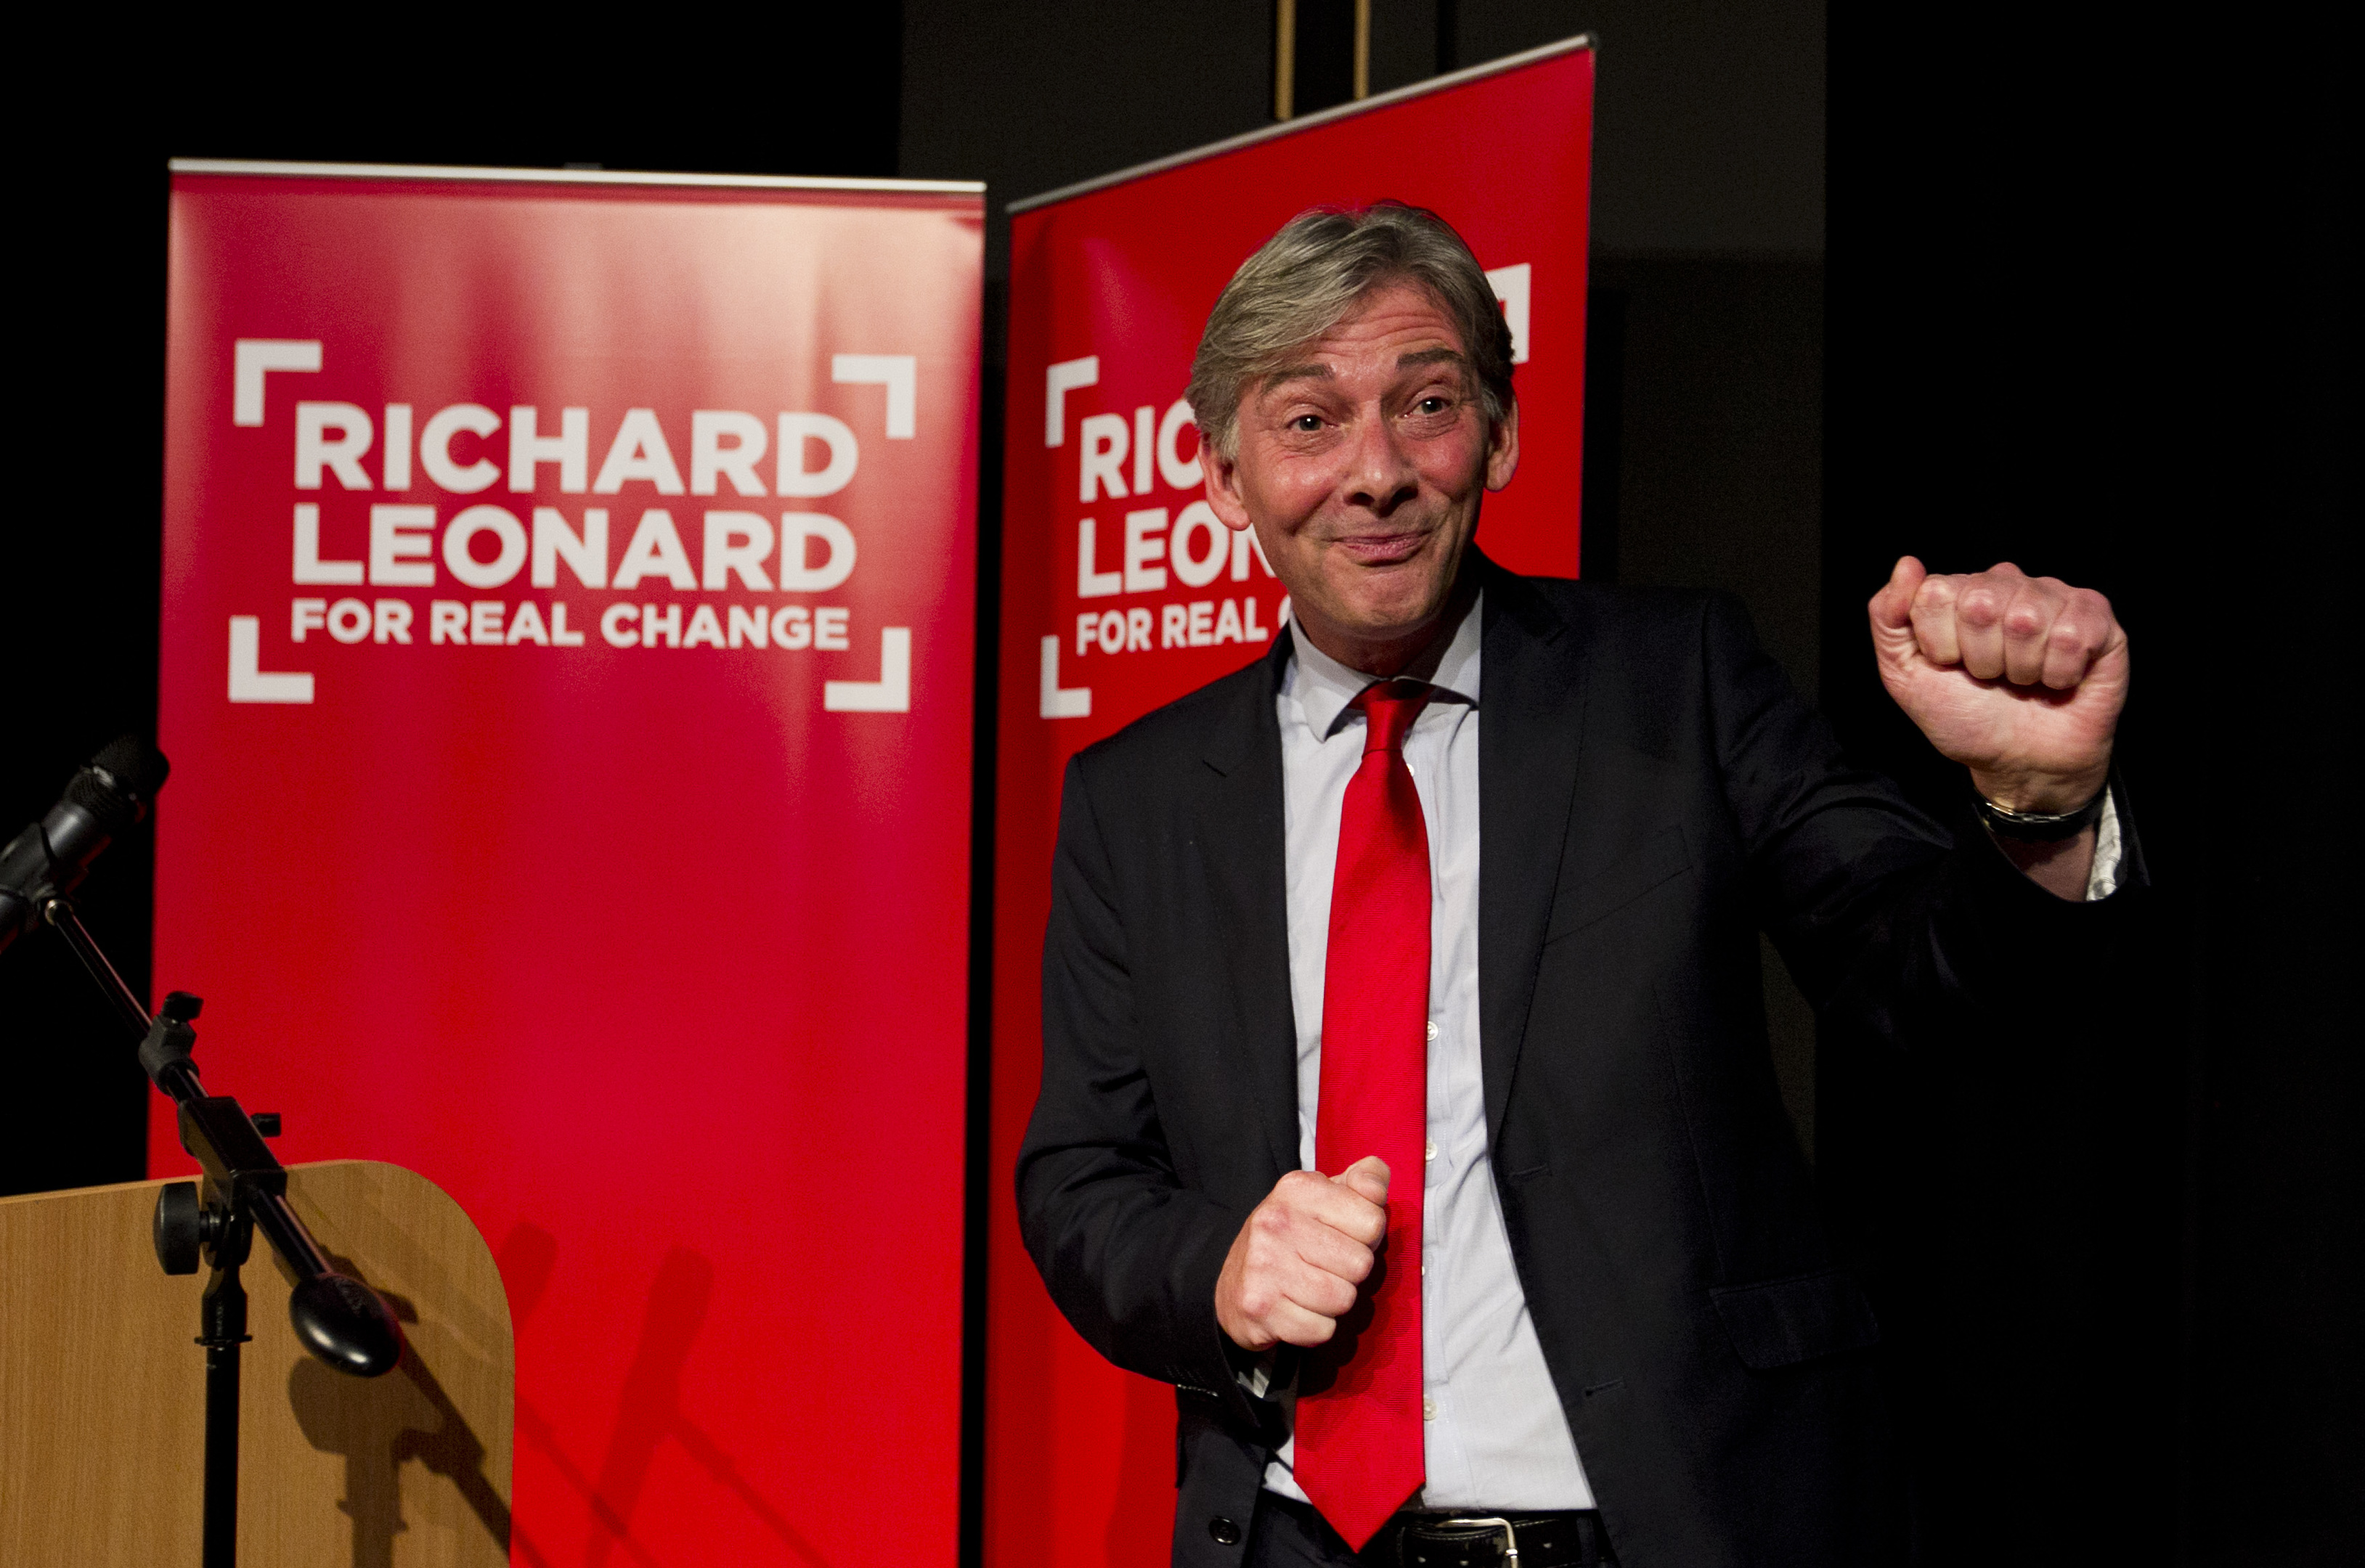 Richard Leonard launching his campaign for the Scottish Labour Party leadership (Andrew Cawley / DC Thomson)